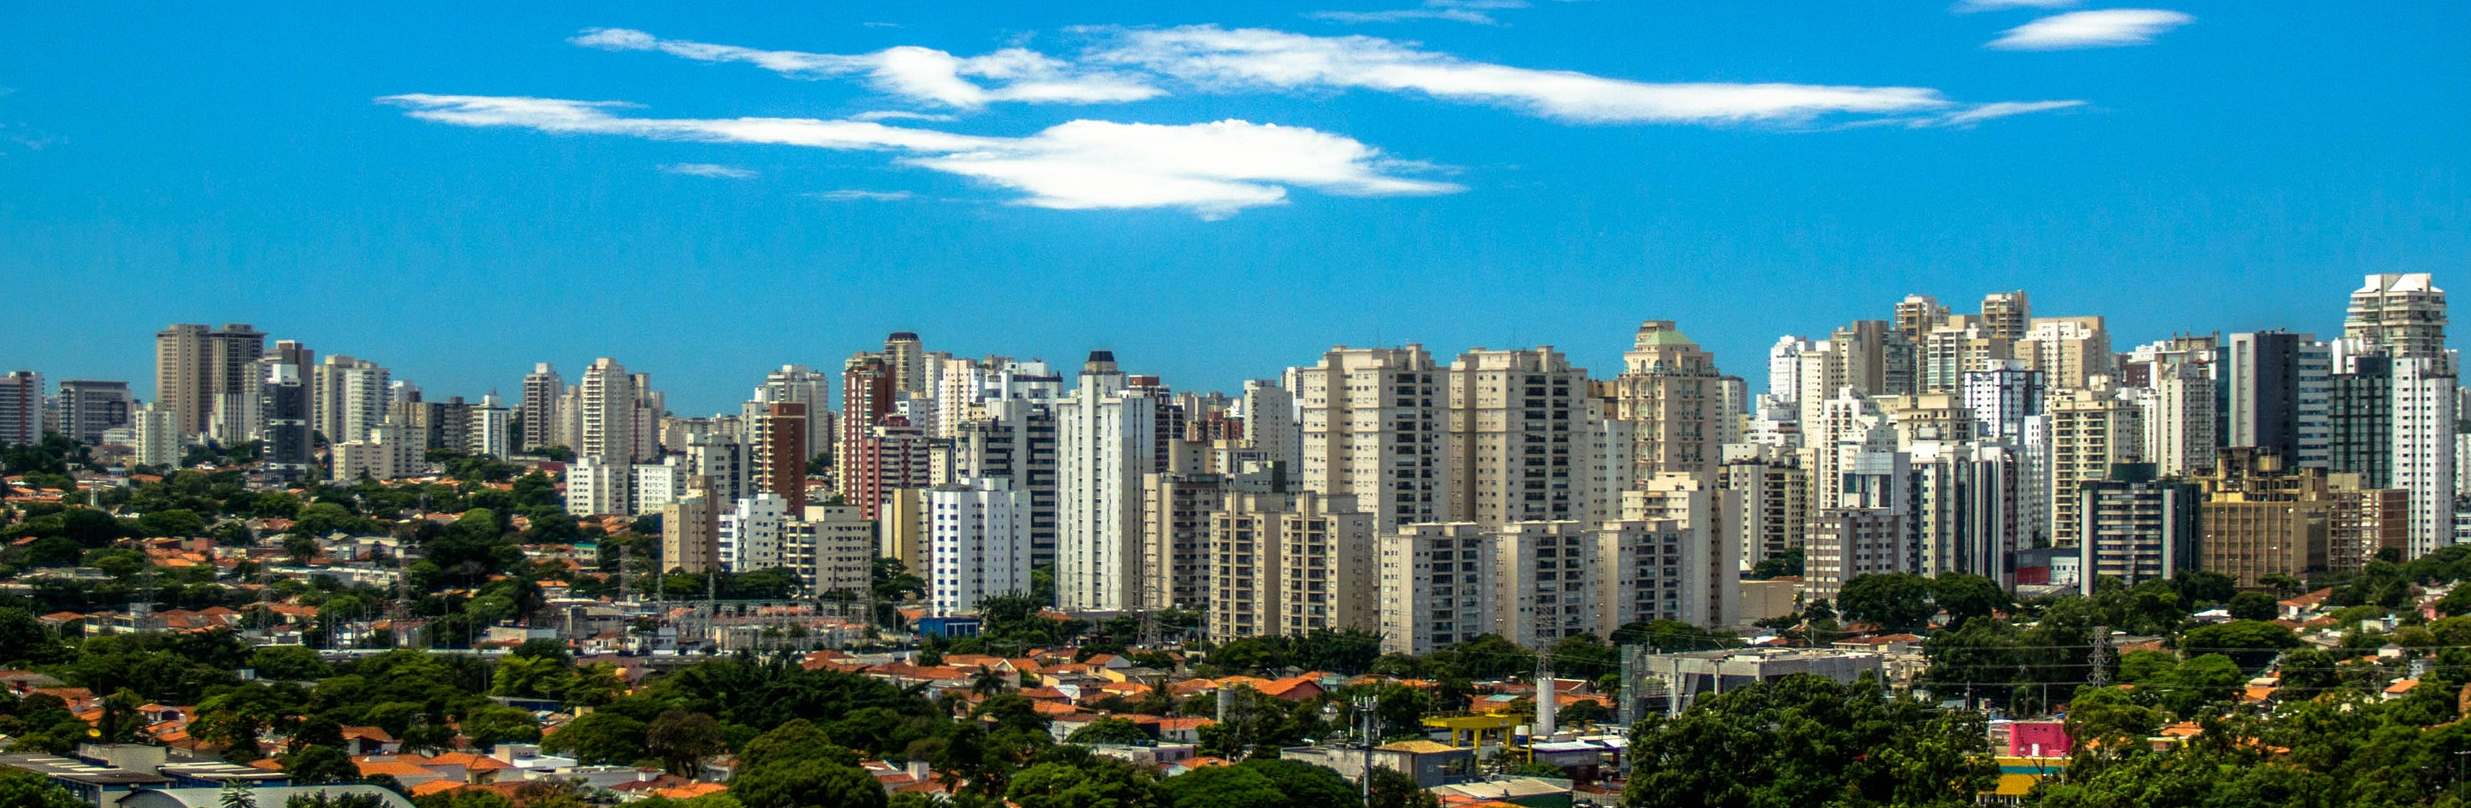 clear-skyline-sao-paulo-in-brazil.jpg